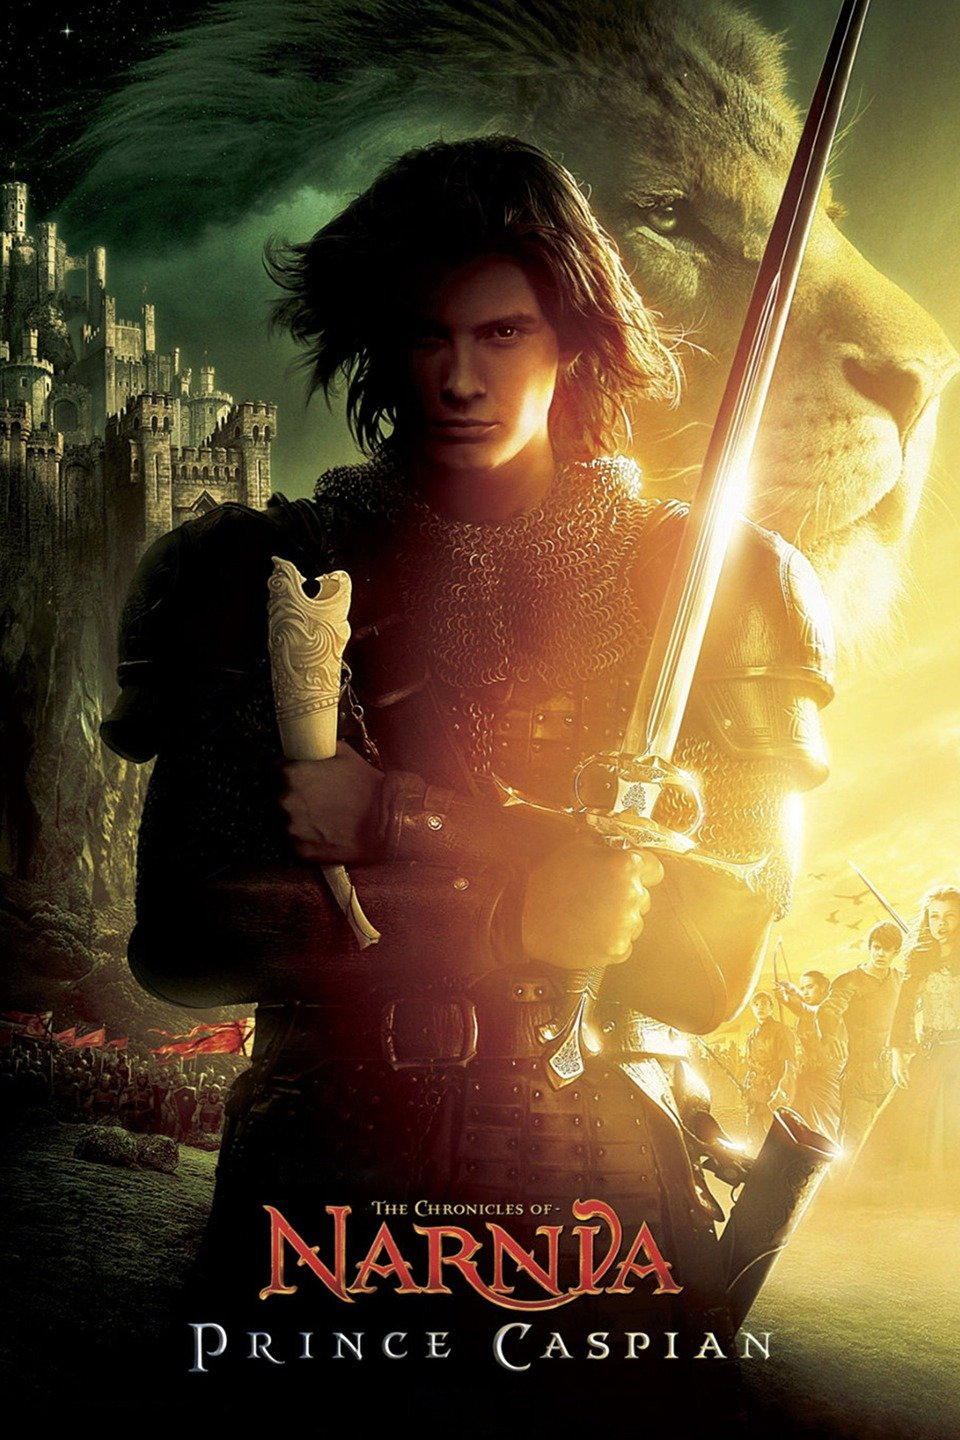 The Chronicles of Narnia: Prince Caspian (2008)